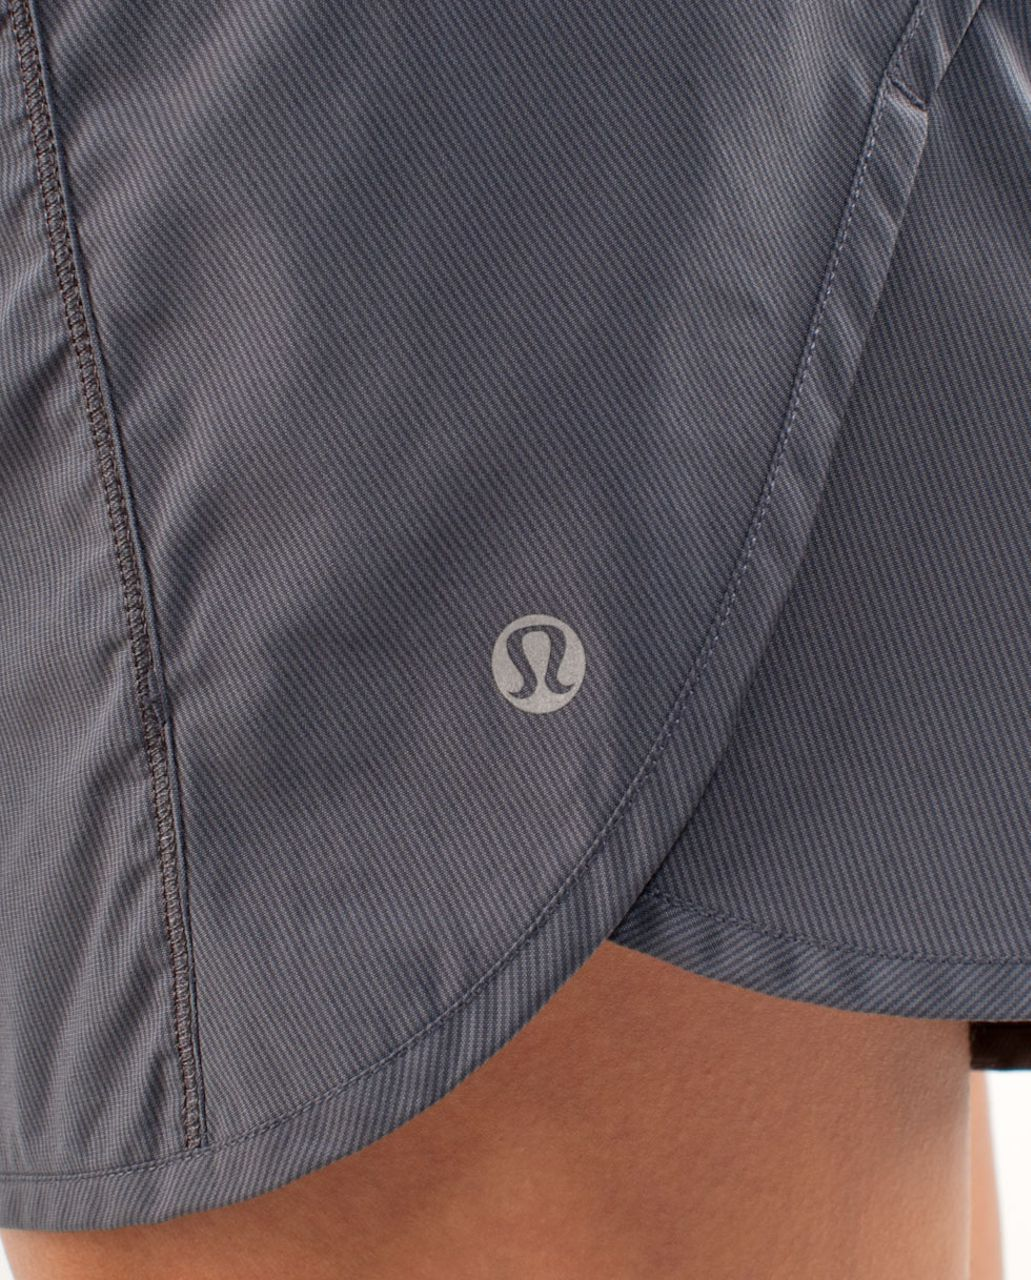 Lululemon Turbo Run Short - Coal /  Flash